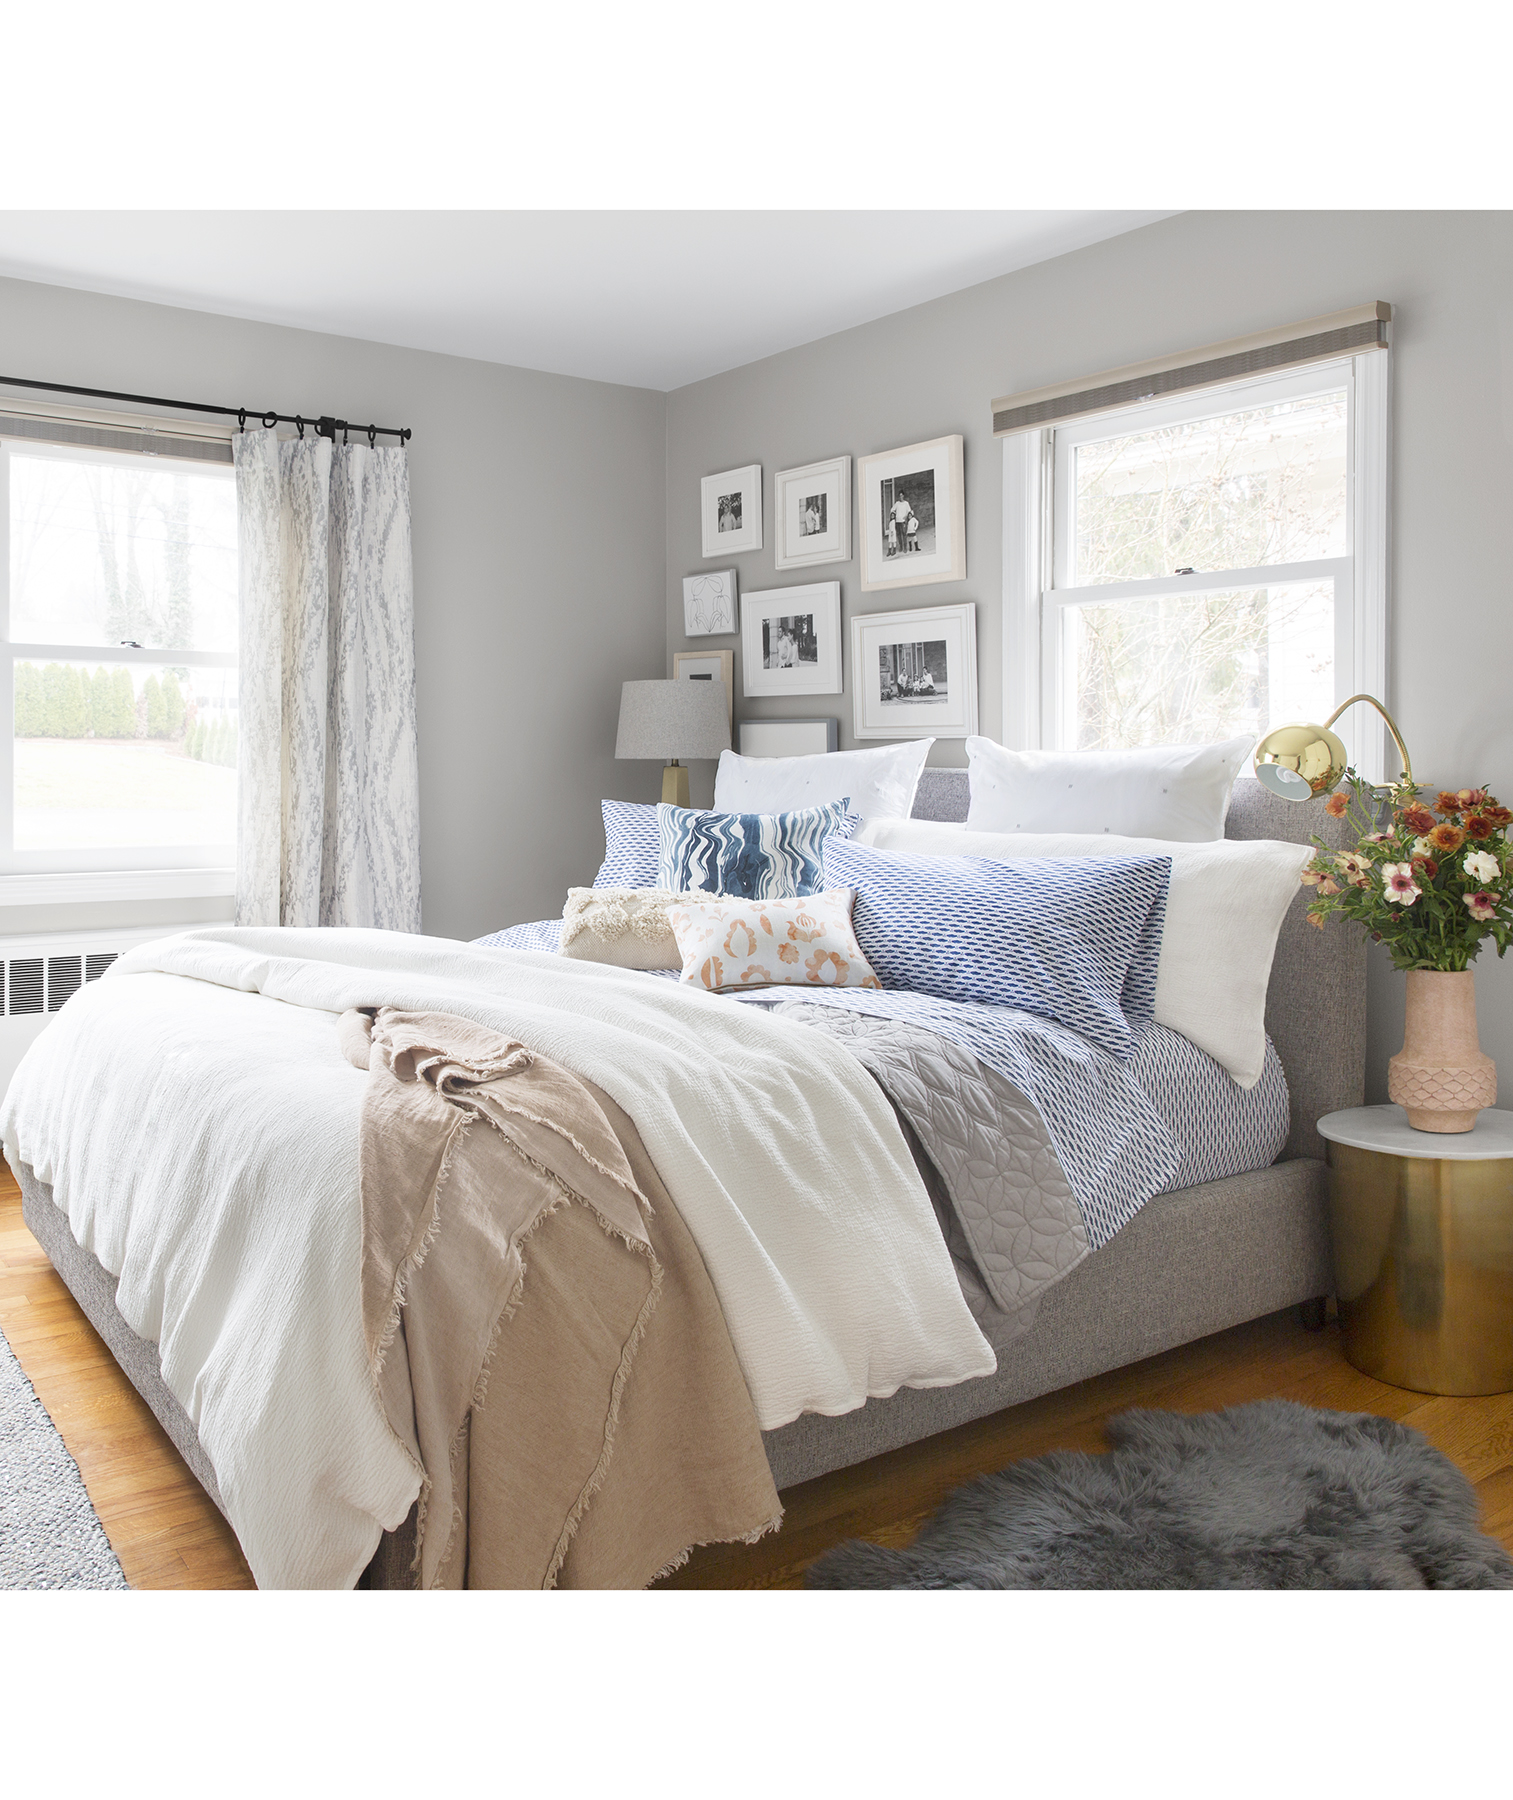 7 Things You Should Get Rid of in Your Bedroom for a More ...